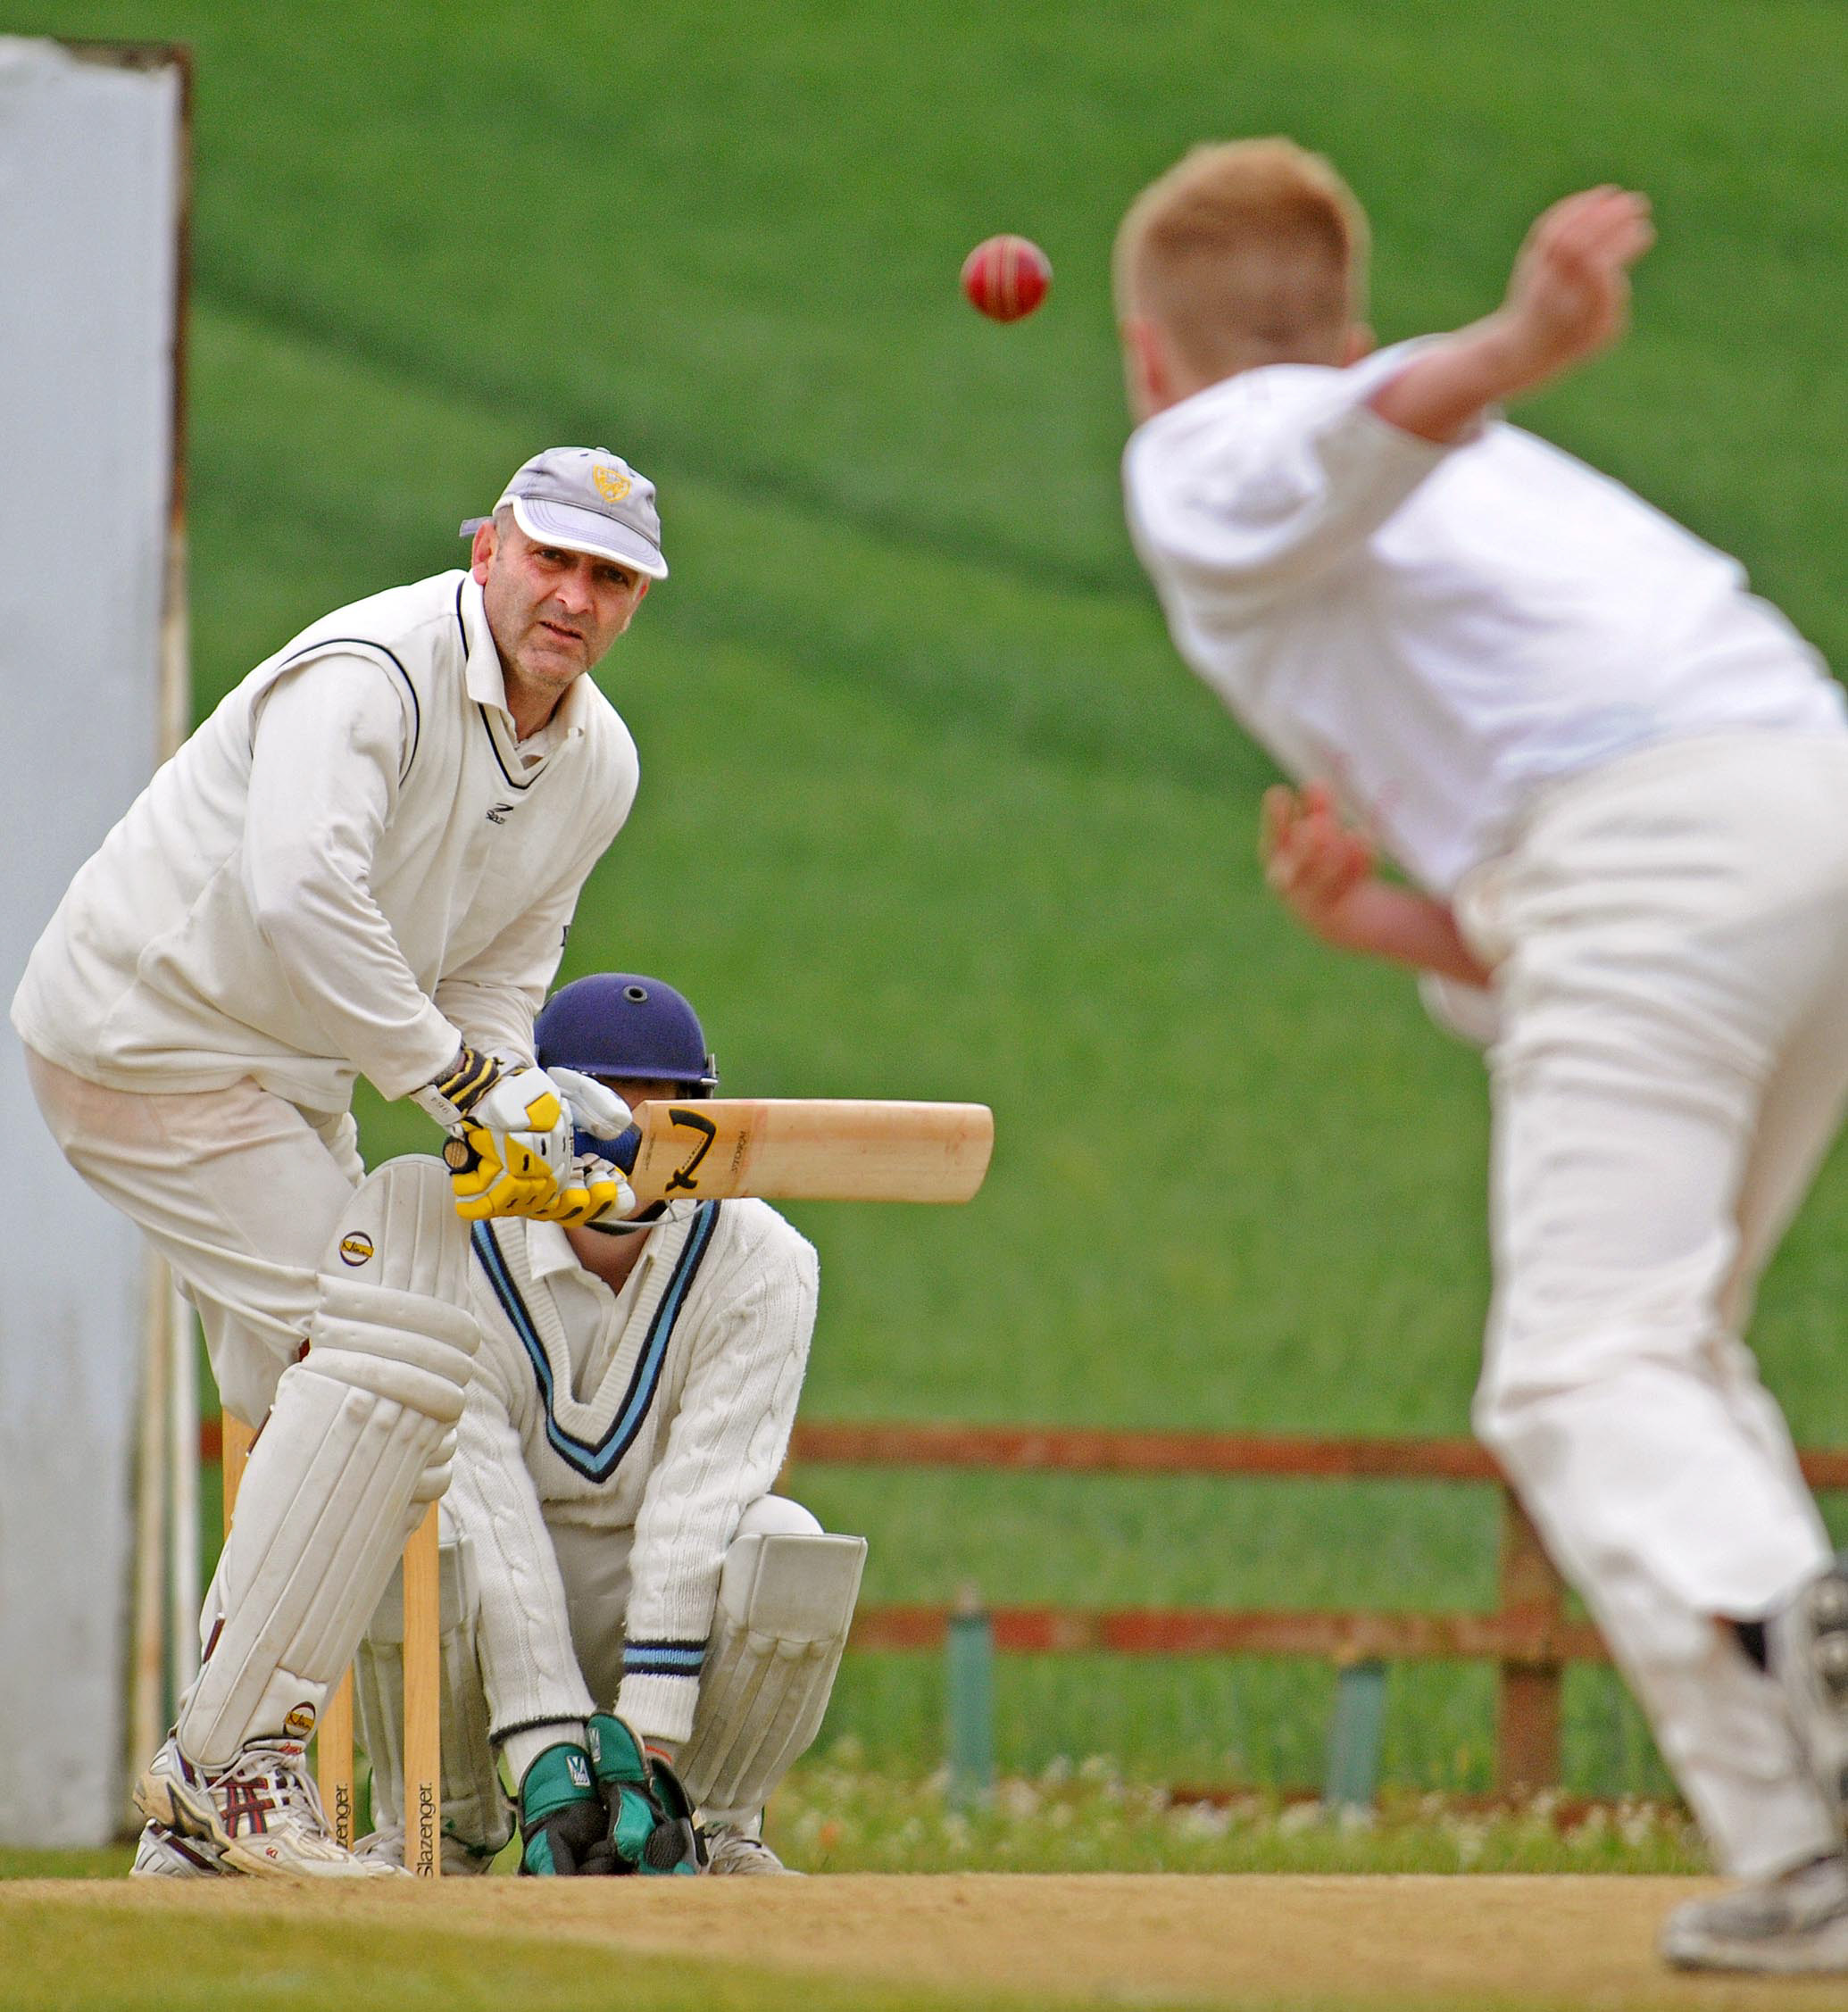 LOOKING WEL: Westow's Andrew Westow hit a half-century during his team's HPH York Vale Cricket League opening-day victory over Kelfield. Welford's efforts saw the championship favourites prevail by 61 runs